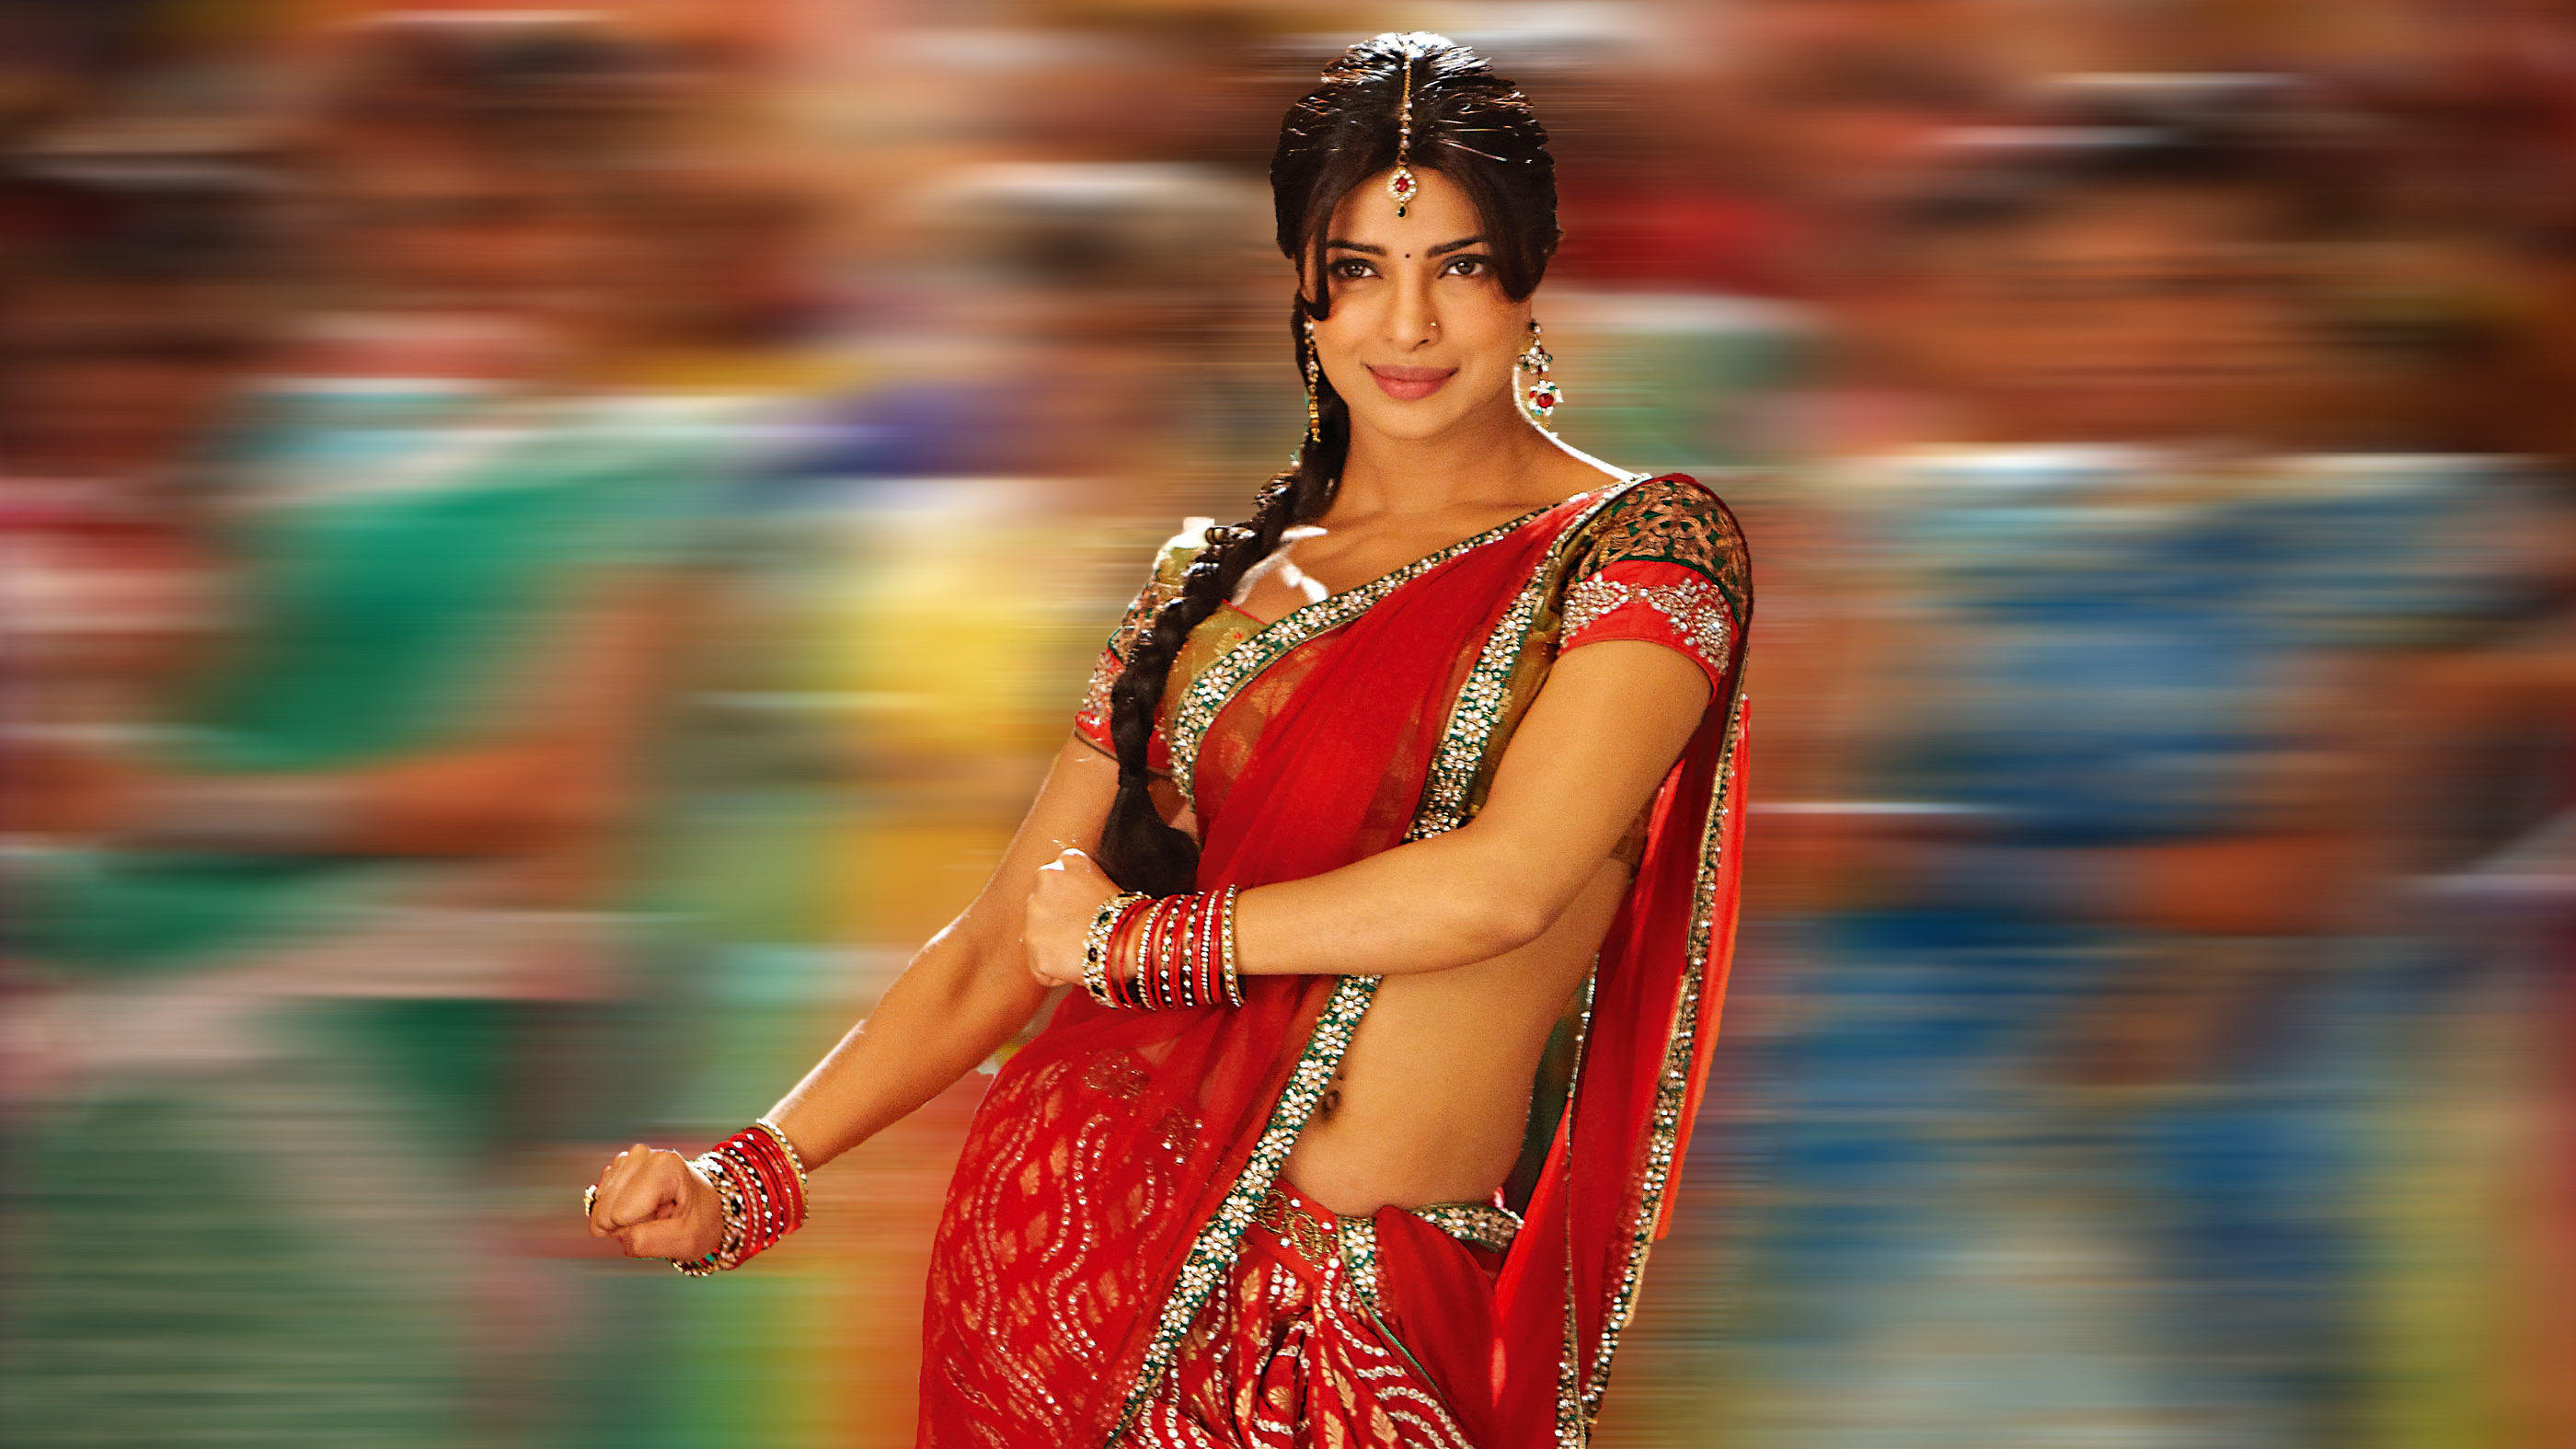 Saree Actress HD Wallpapers 1080p - WallpaperSafari